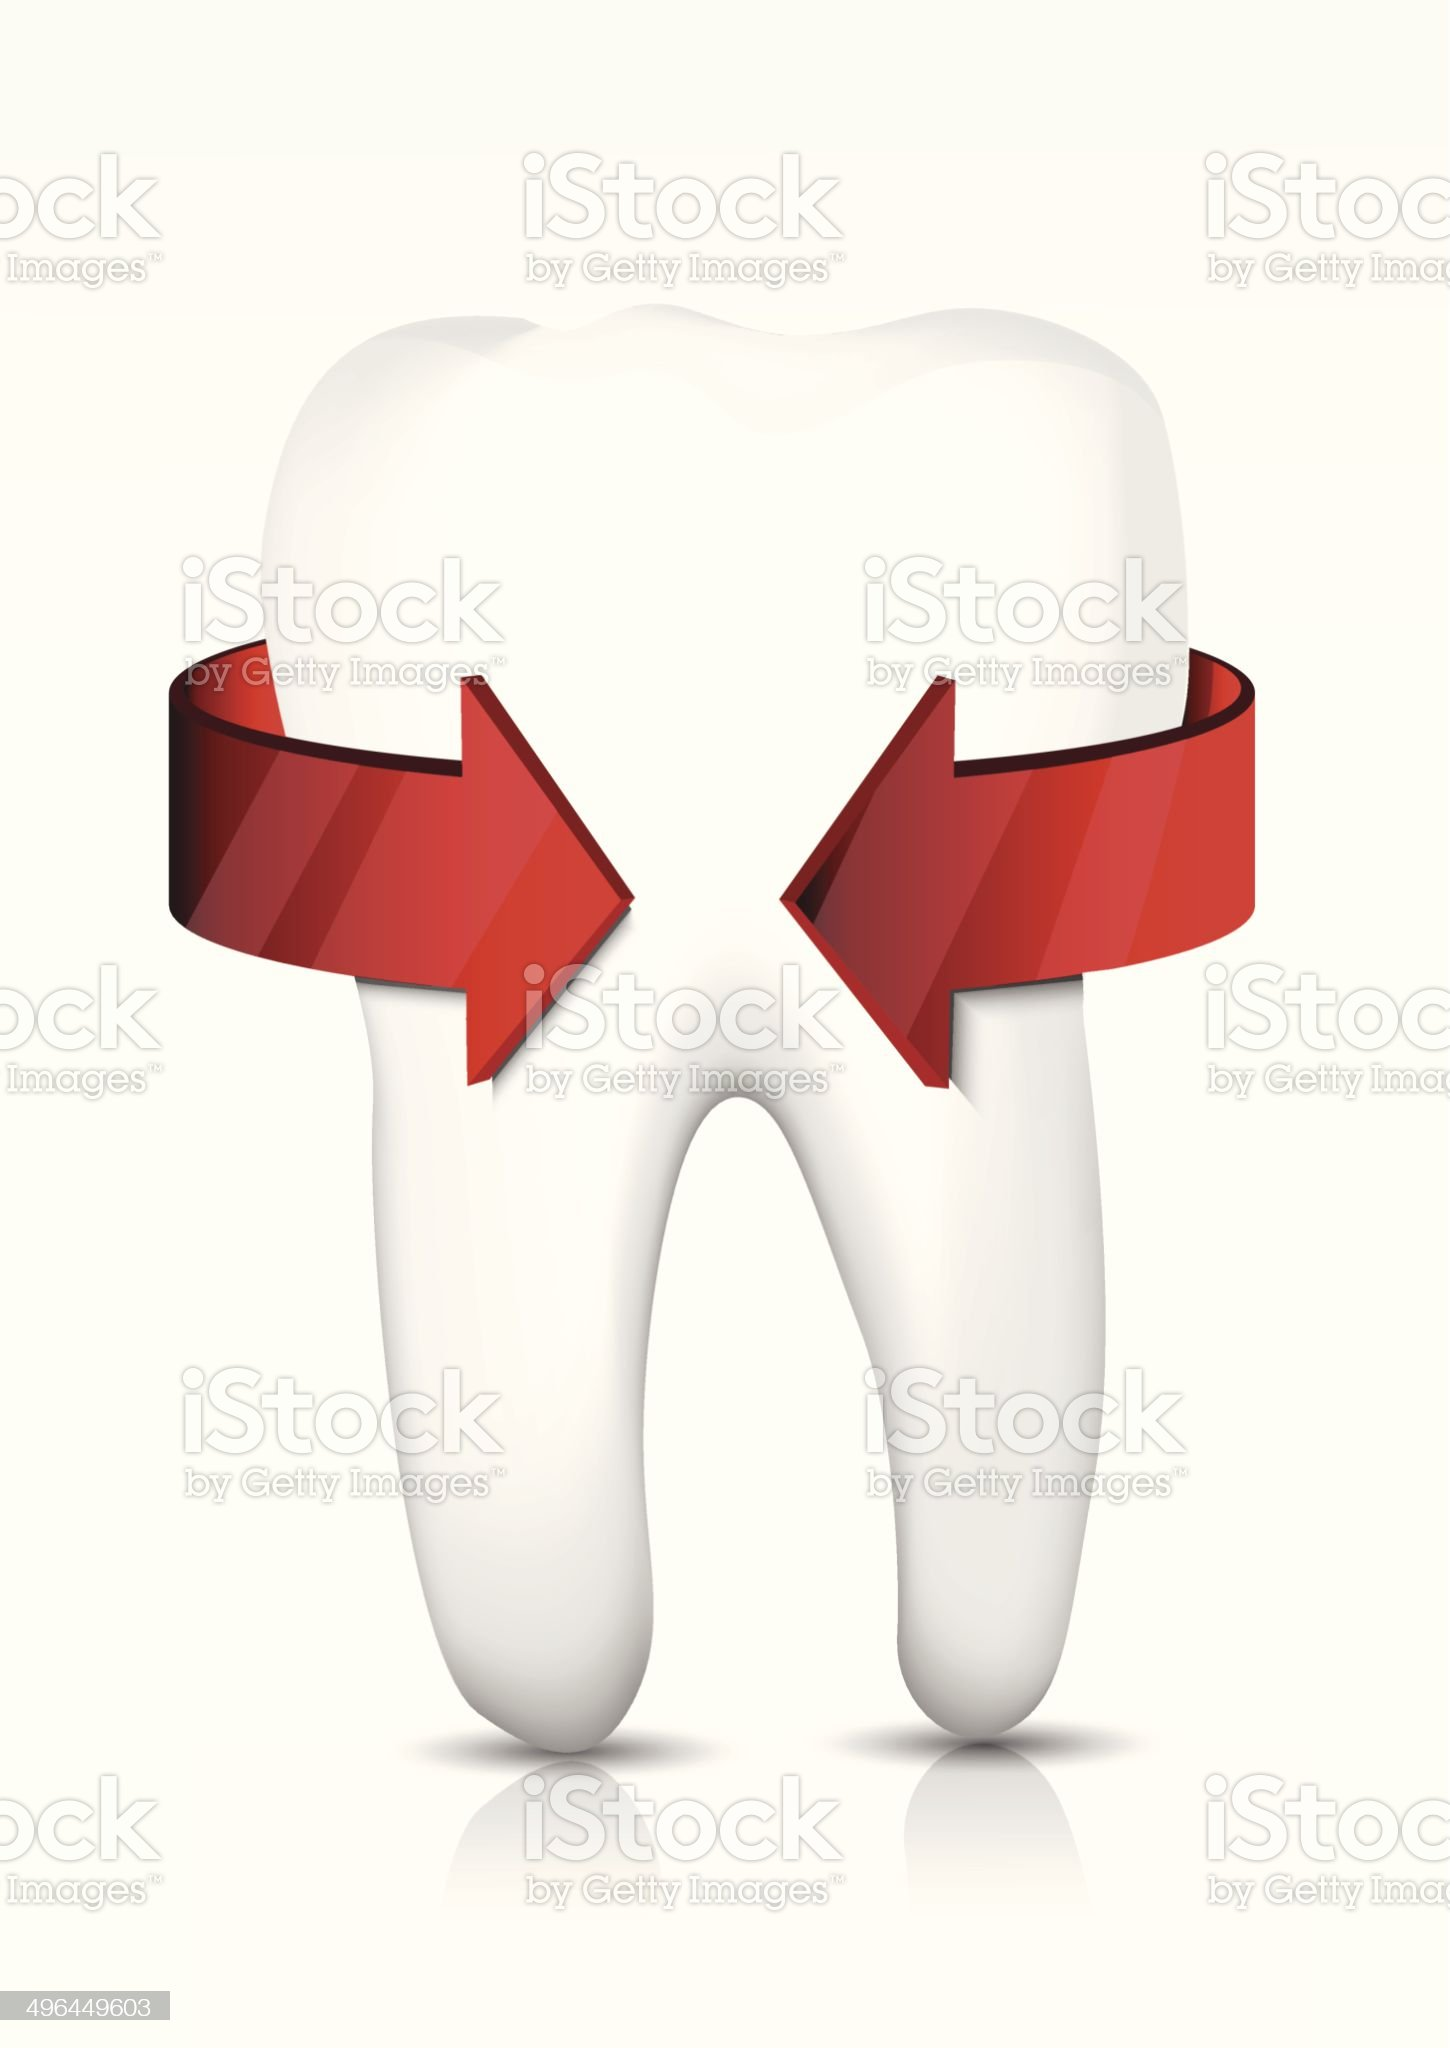 Vector tooth protection royalty-free stock vector art